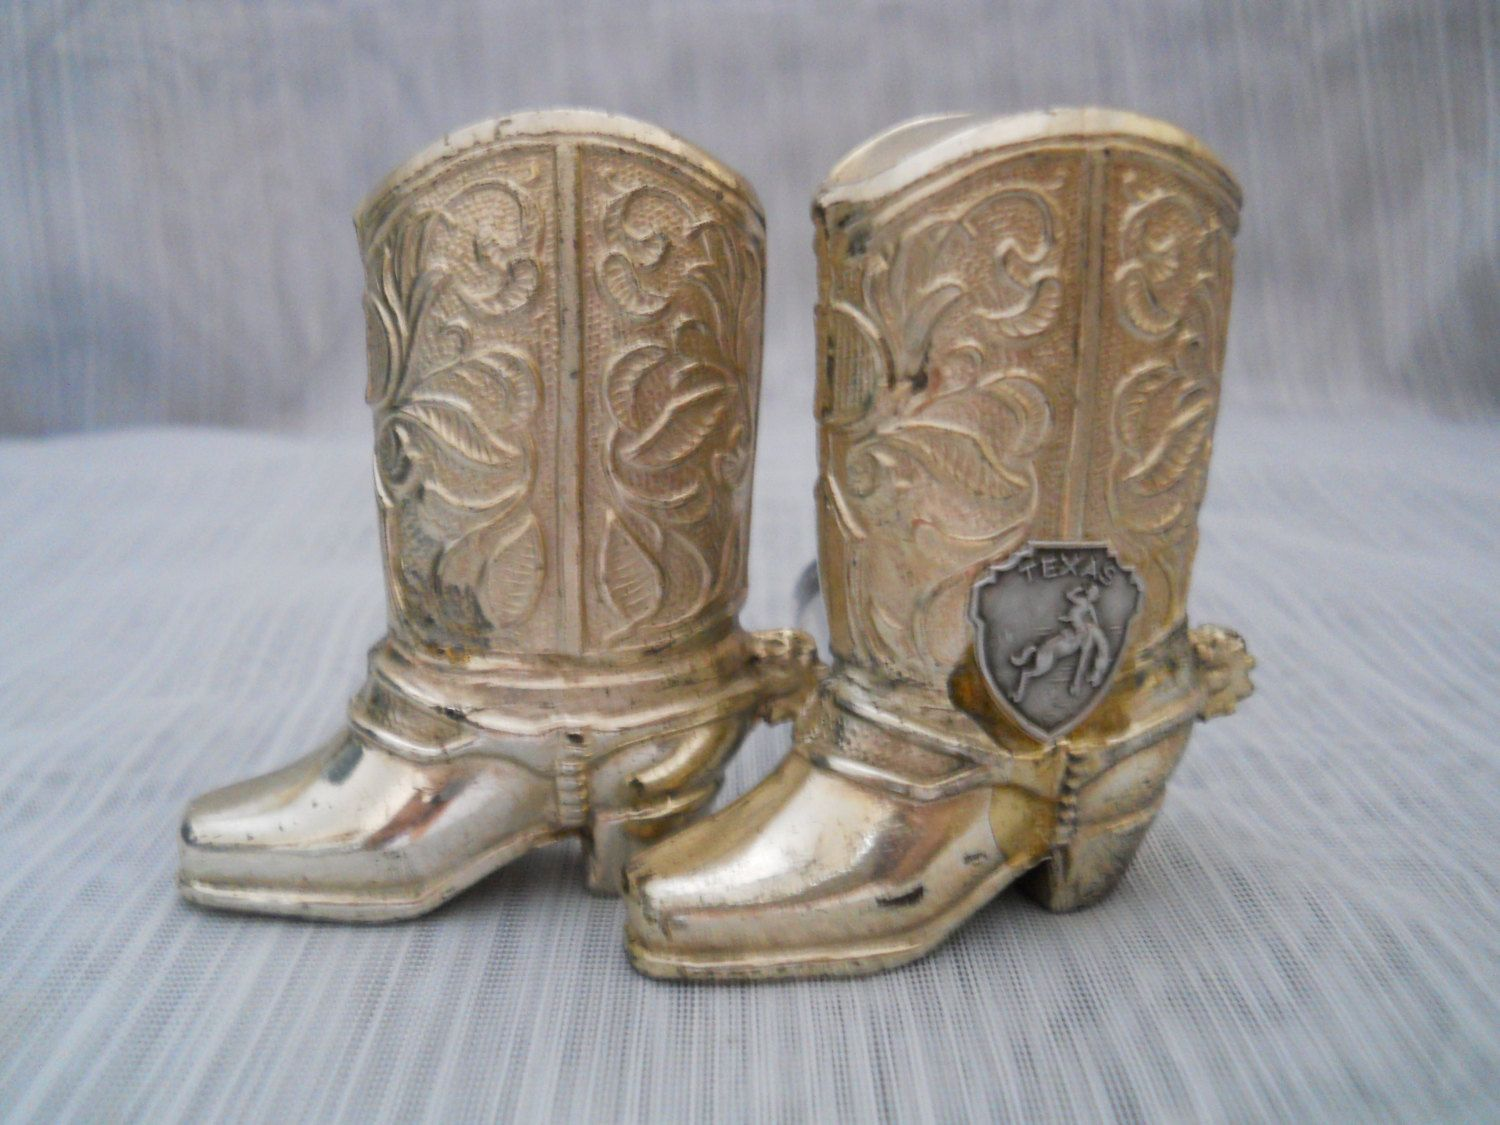 b2f1666f14461 Texas Cowboy boots salt and pepper shakers - vintage